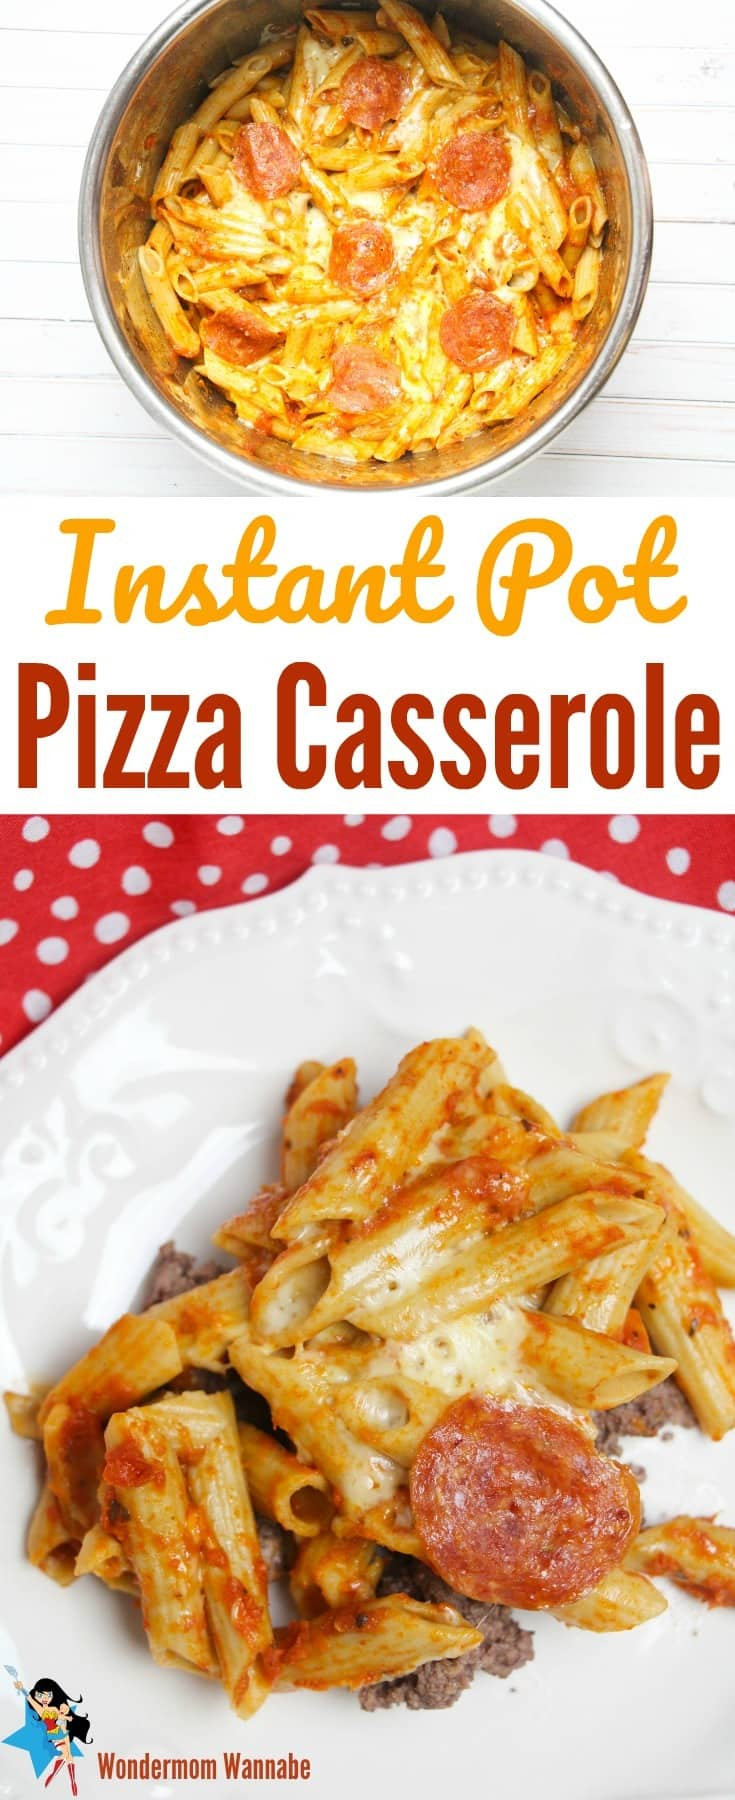 a collage of pizza casserole in a pot and on a white plate with title text reading Instant Pot Pizza Casserole